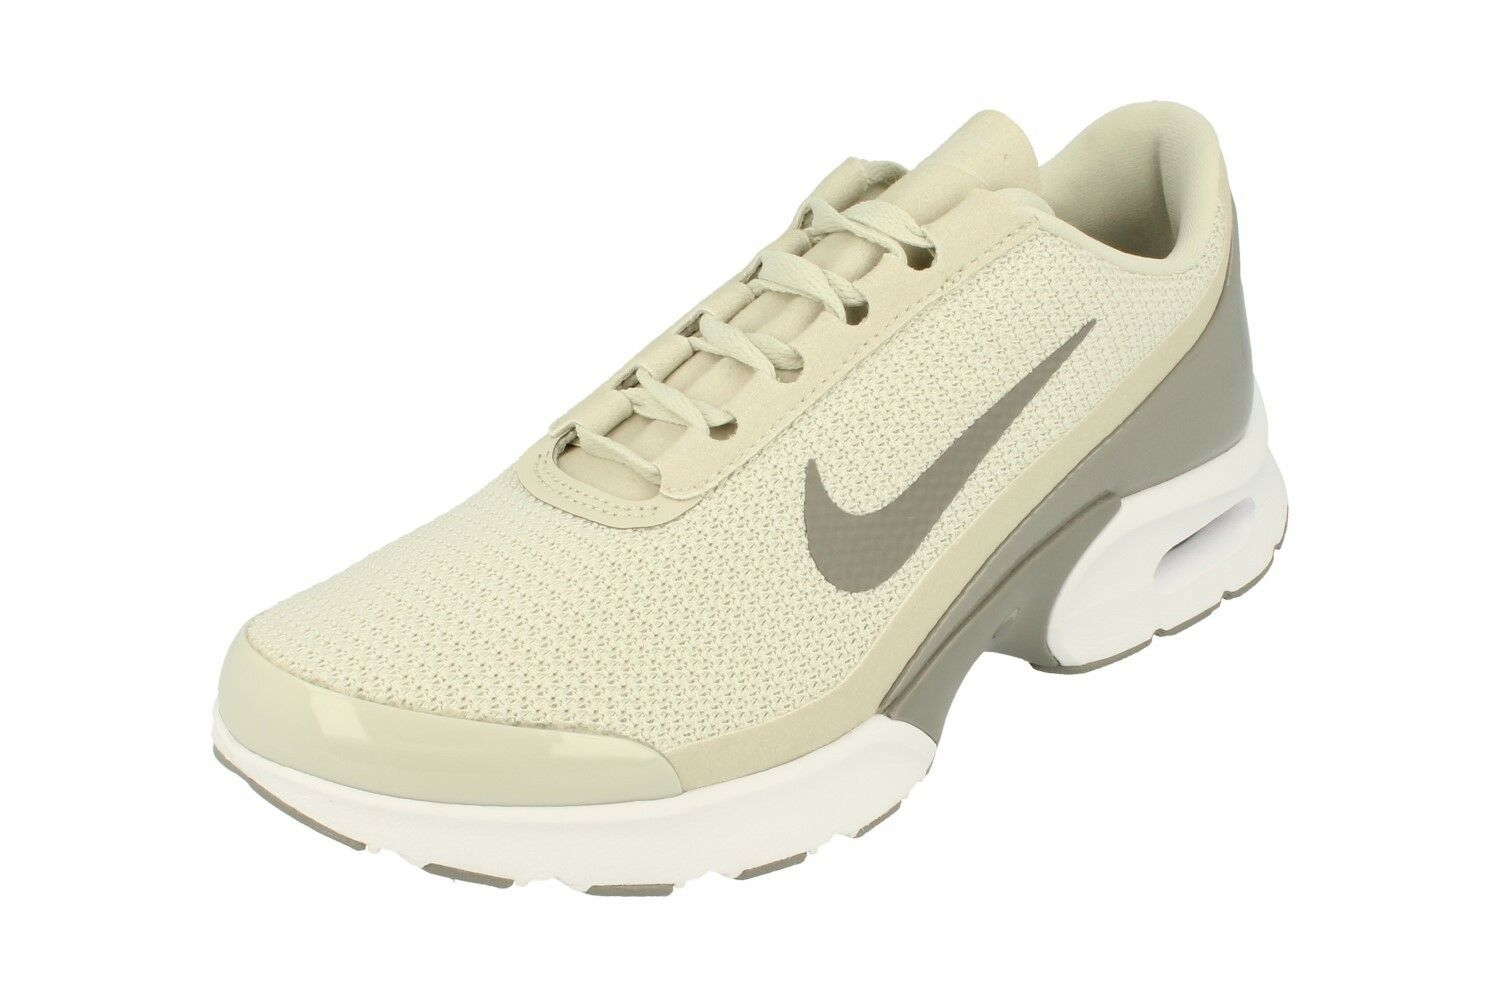 baedbc38e2 Womens Air Max Jewel Running Trainers 896194 Sneakers shoes 002 Nike  ncejwm2285-Athletic Shoes